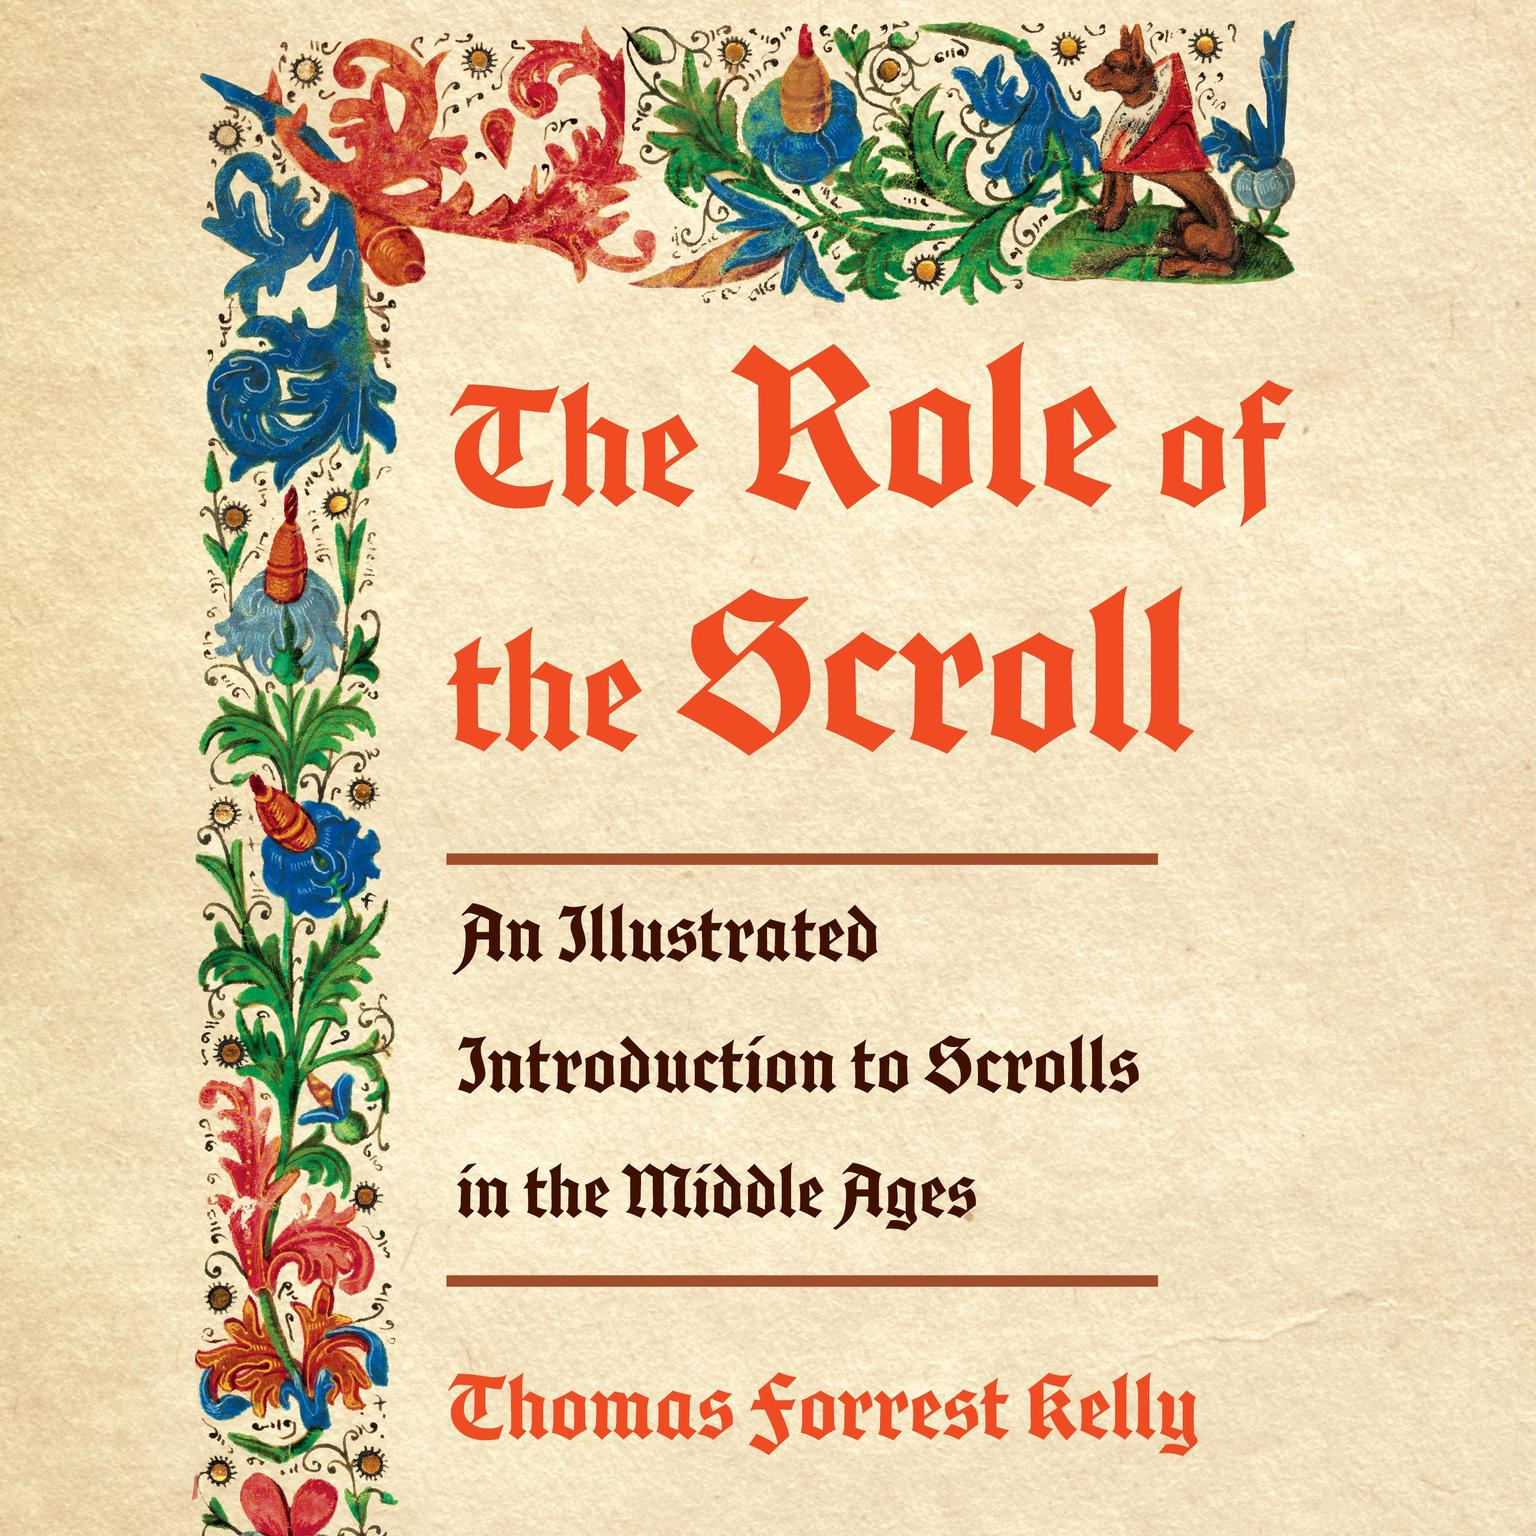 photo regarding Printable Scrolls titled The Job of the Scroll: An Illustrated Arrival towards Scrolls within the Center Ages Audiobook